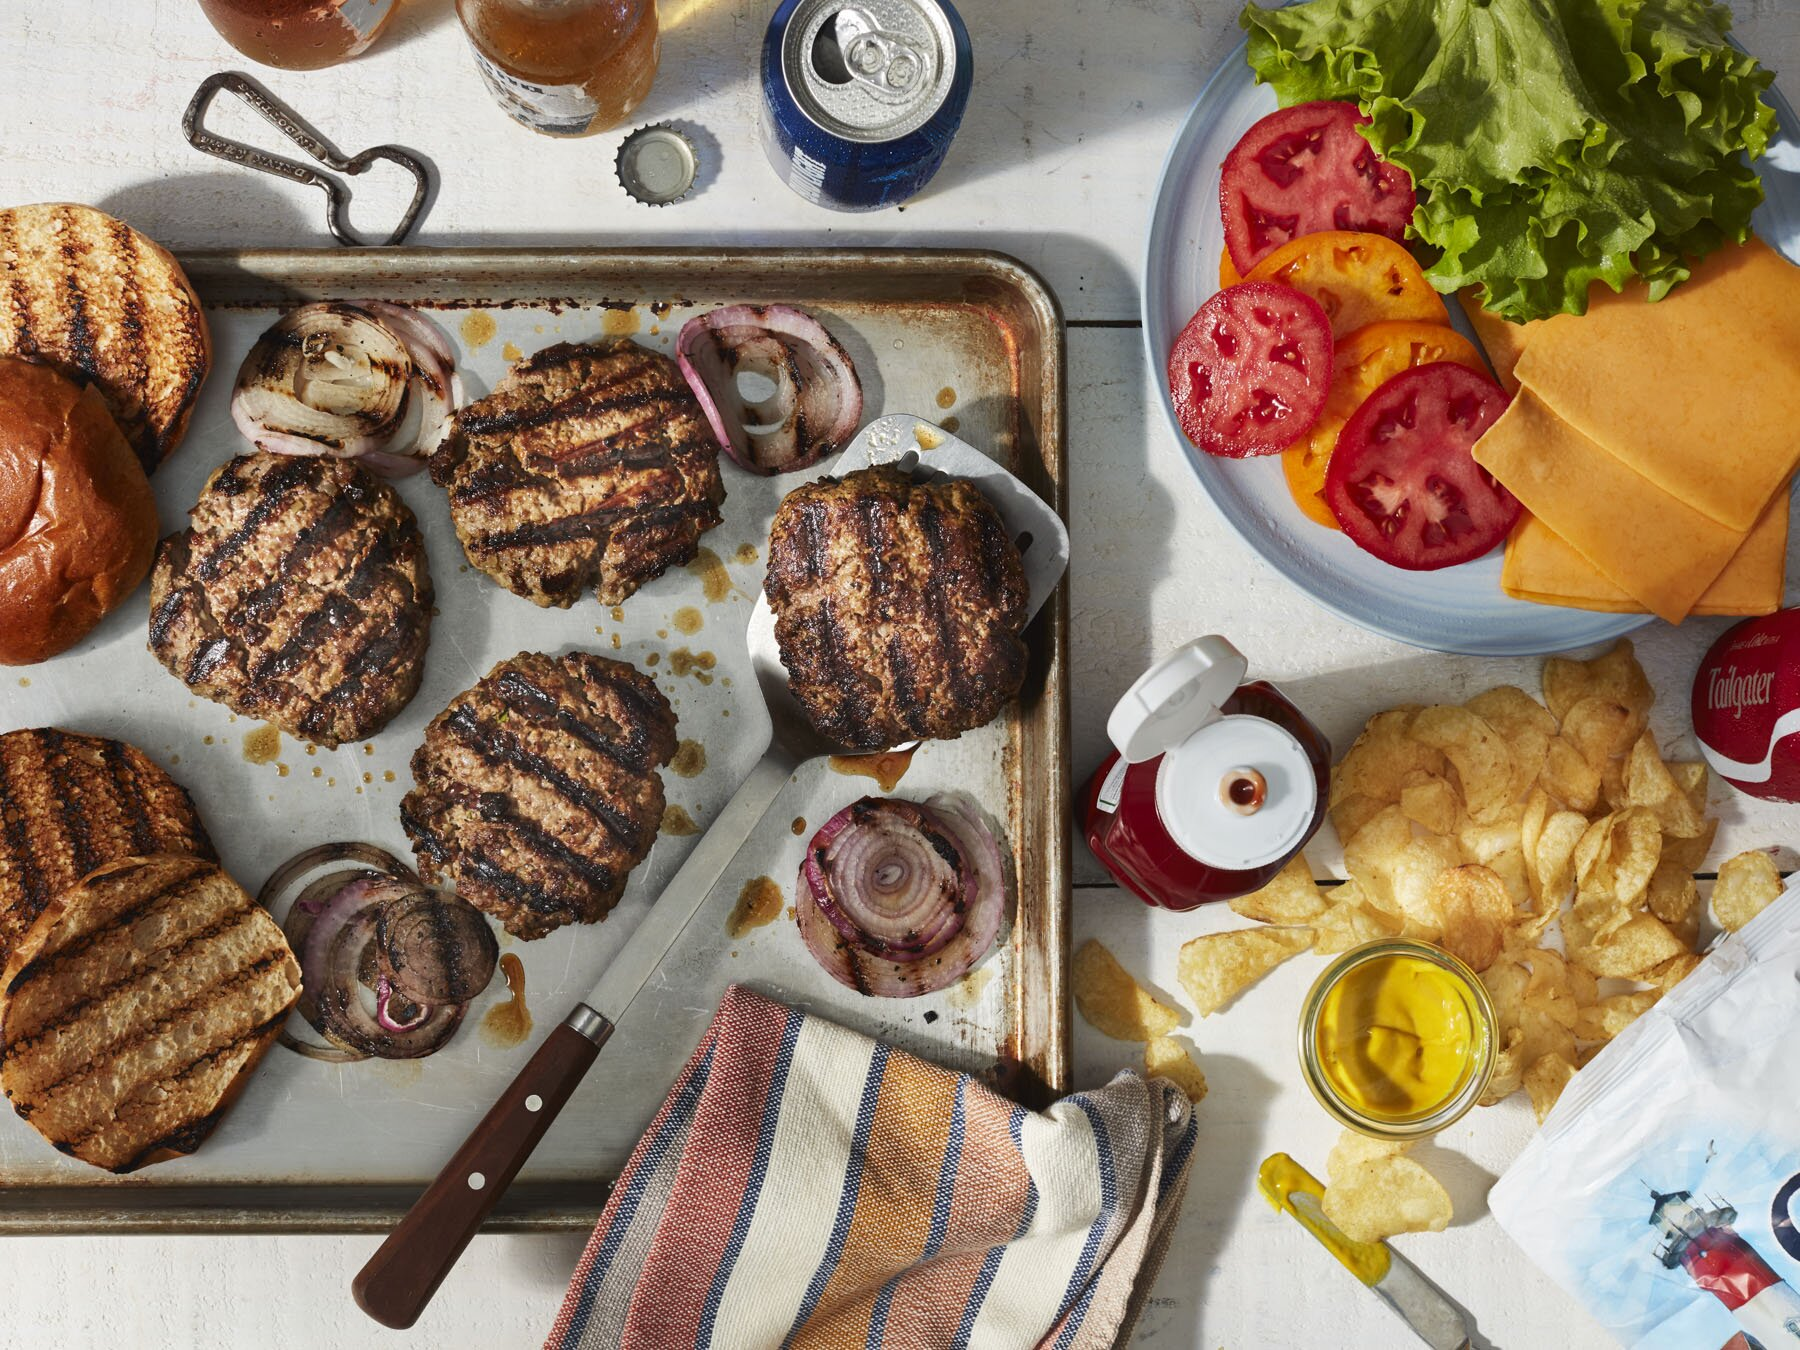 How Long Can I Safely Leave Food Sitting Out at a Cookout? | MyRecipes